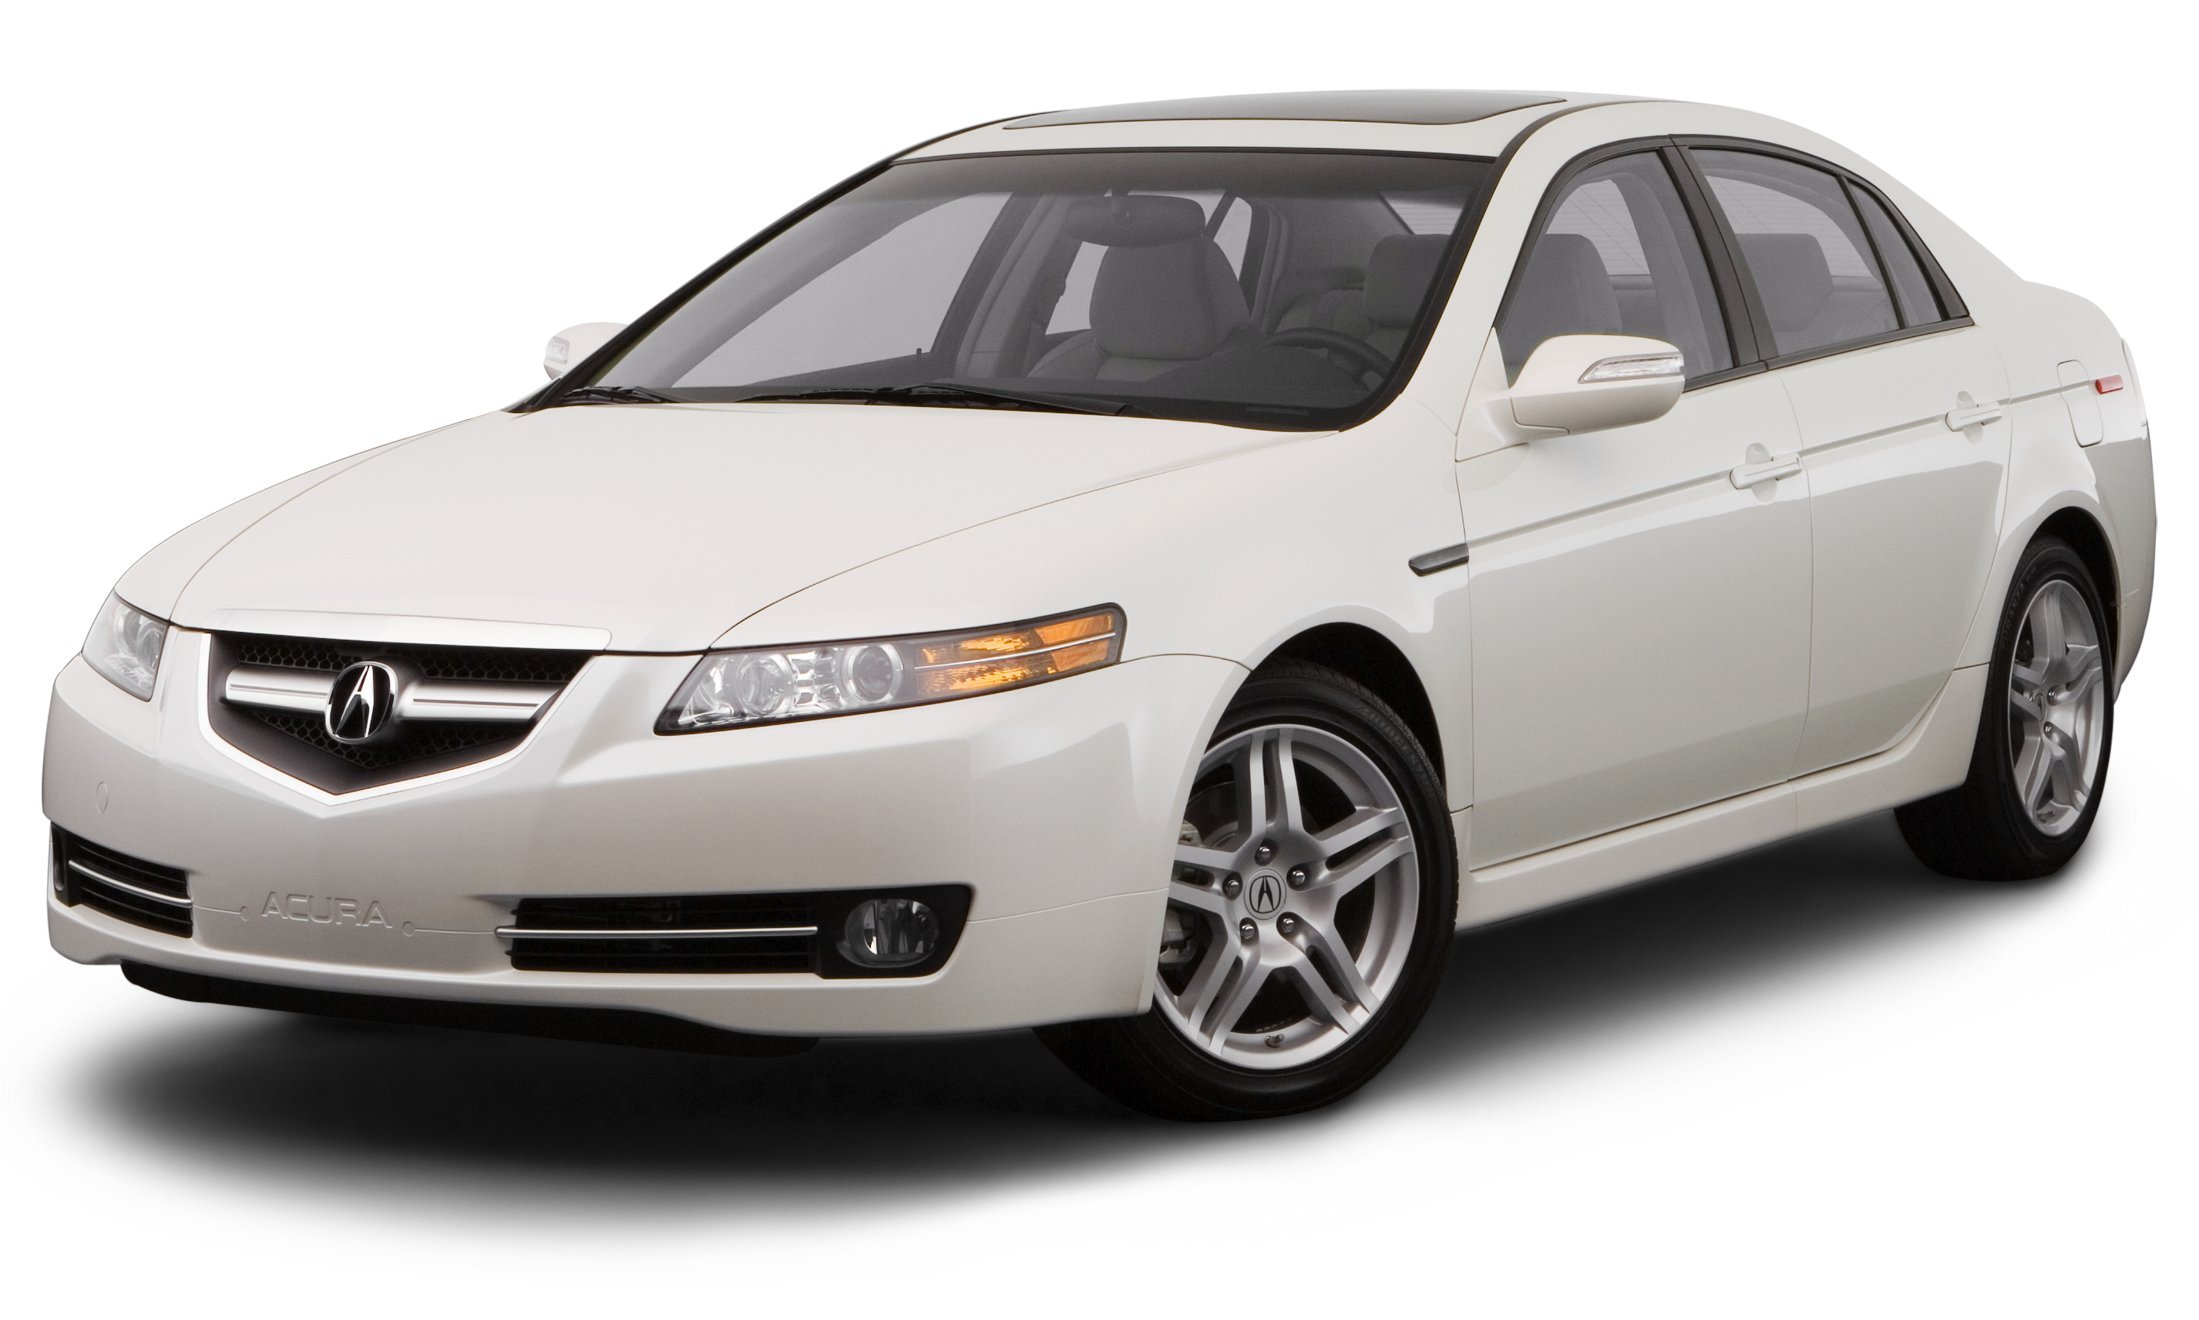 Amazoncom Acura TL Reviews Images And Specs Vehicles - Acura tl manual transmission